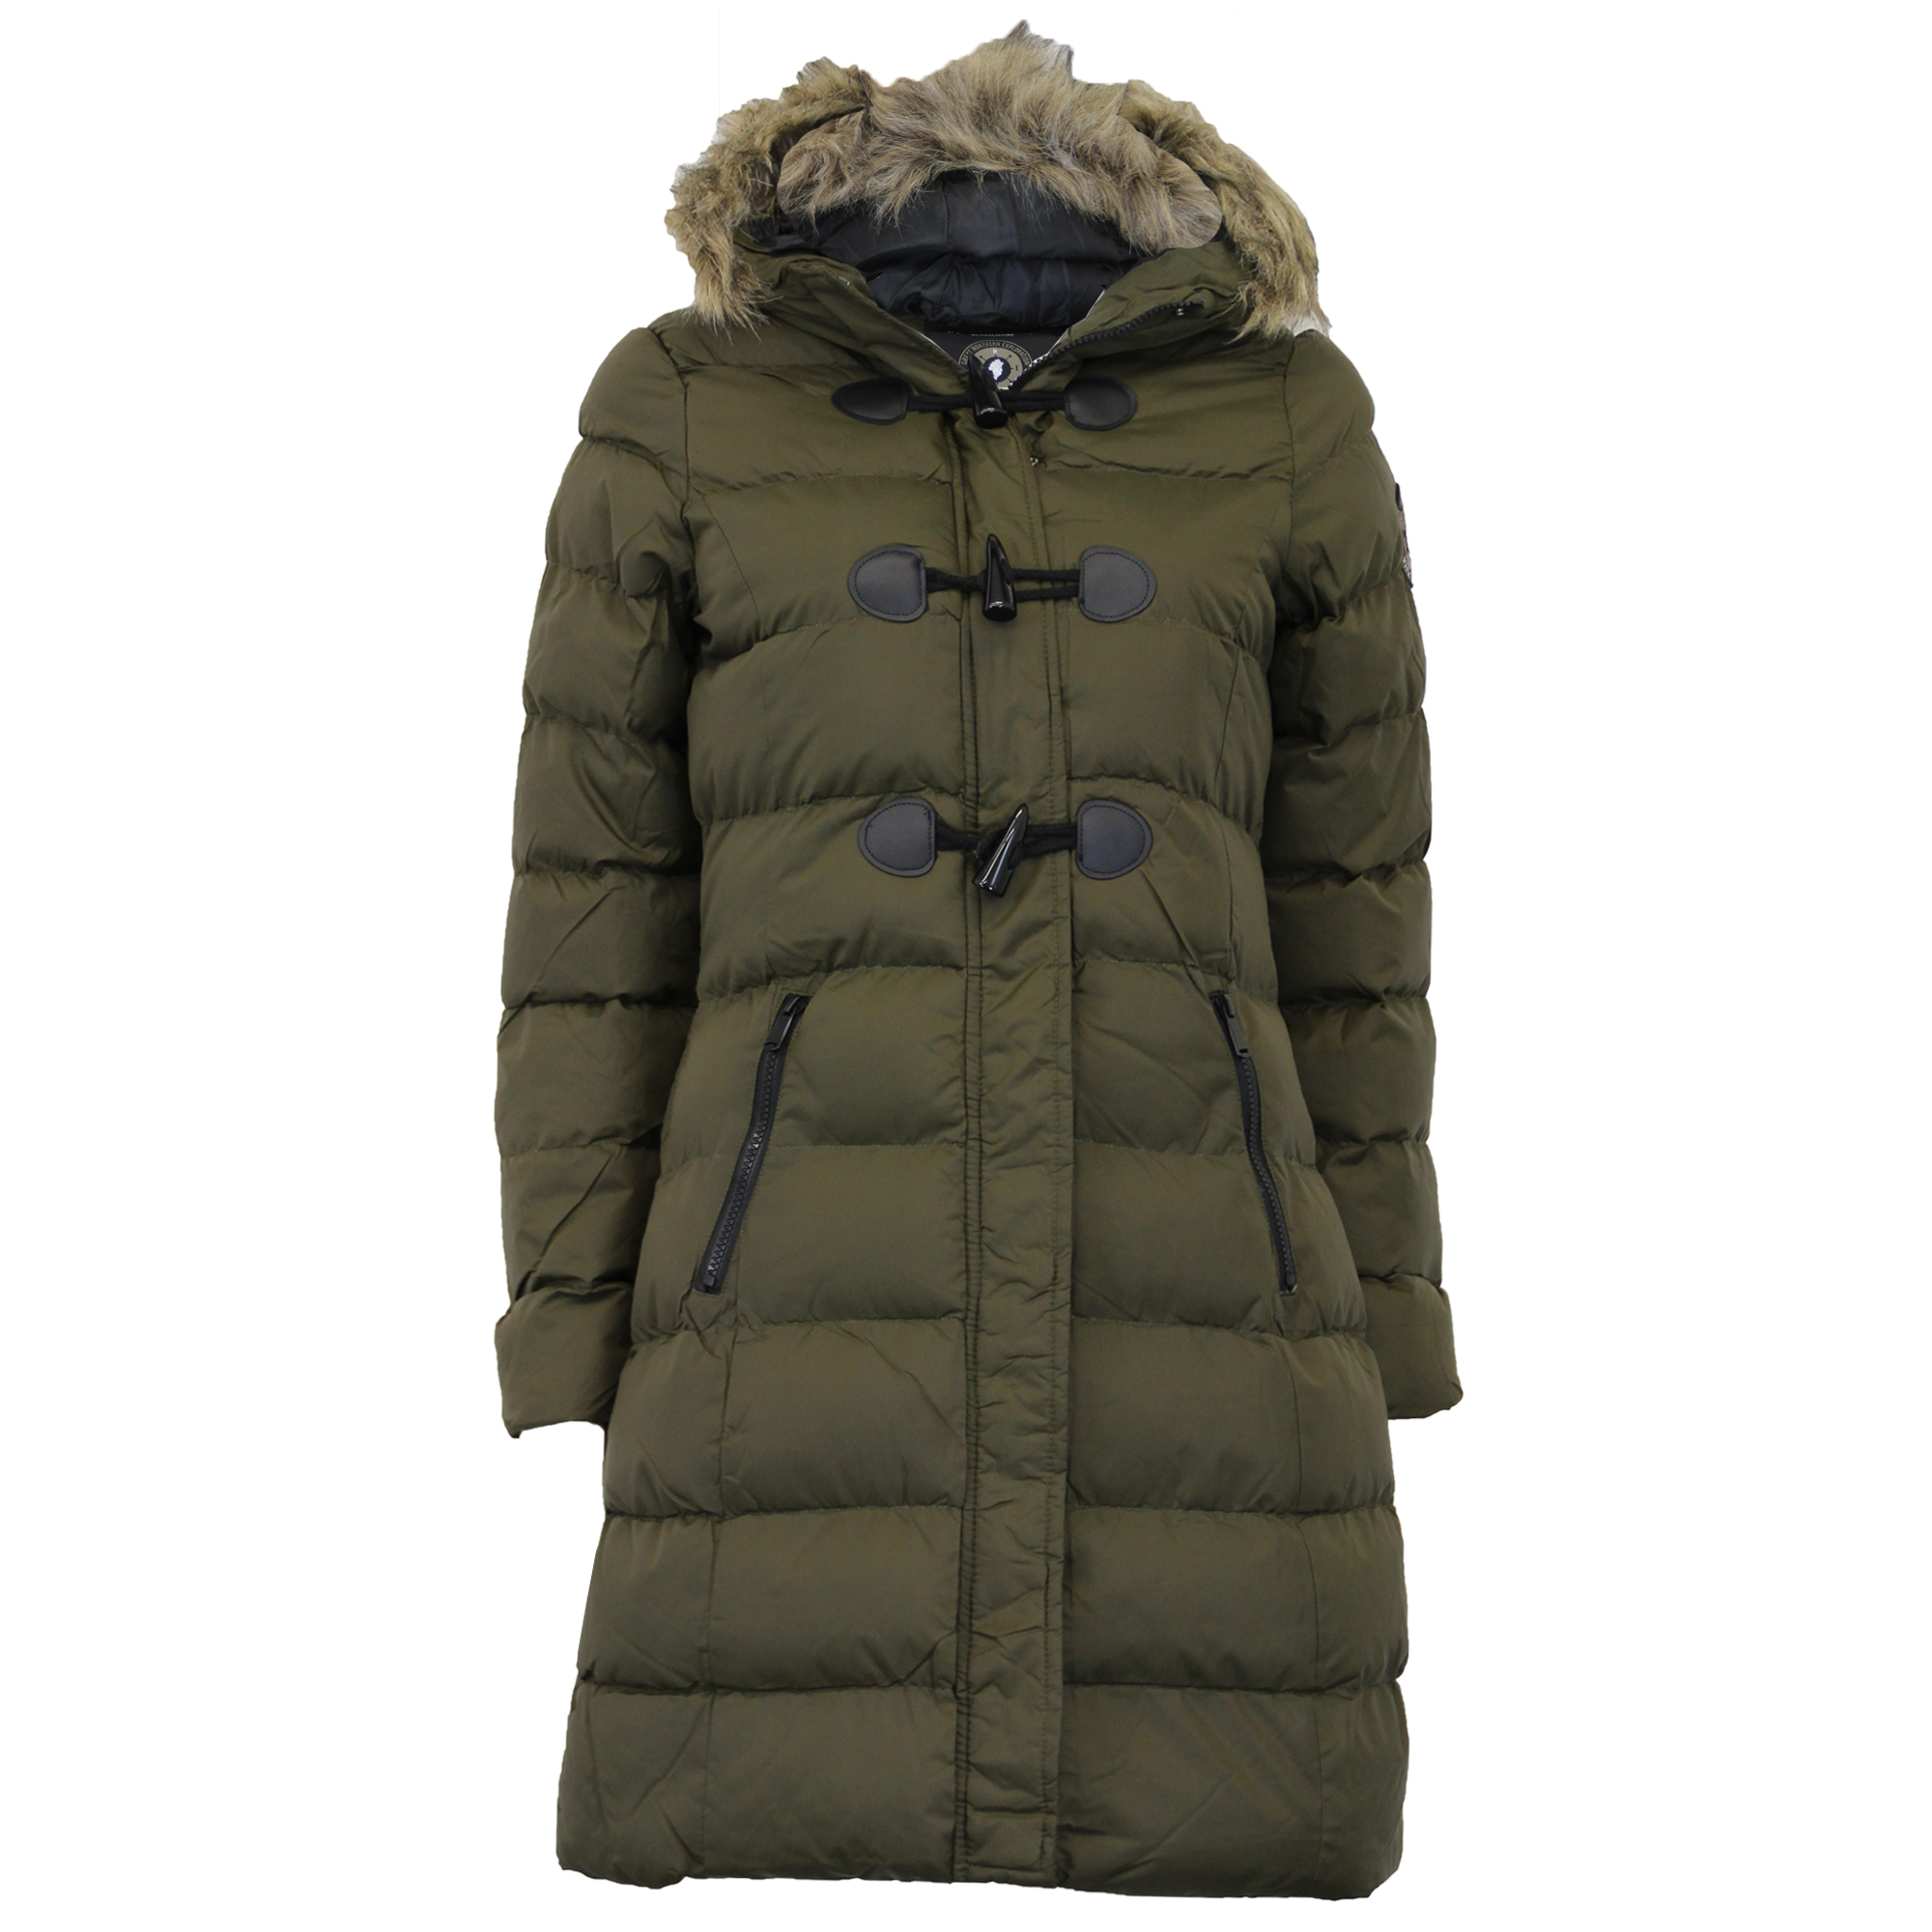 Long Wool-Blend Overcoat. $ Clearance. Save quickview. Lightweight Puffer Jacket. $ $72 Clearance. Save quickview. Lightweight Puffer Jacket. $ $72 Womens Coats. The softest, warmest, most comfortable jackets are here at Abercrombie & Fitch. We have a rich heritage in outerwear, dating back to